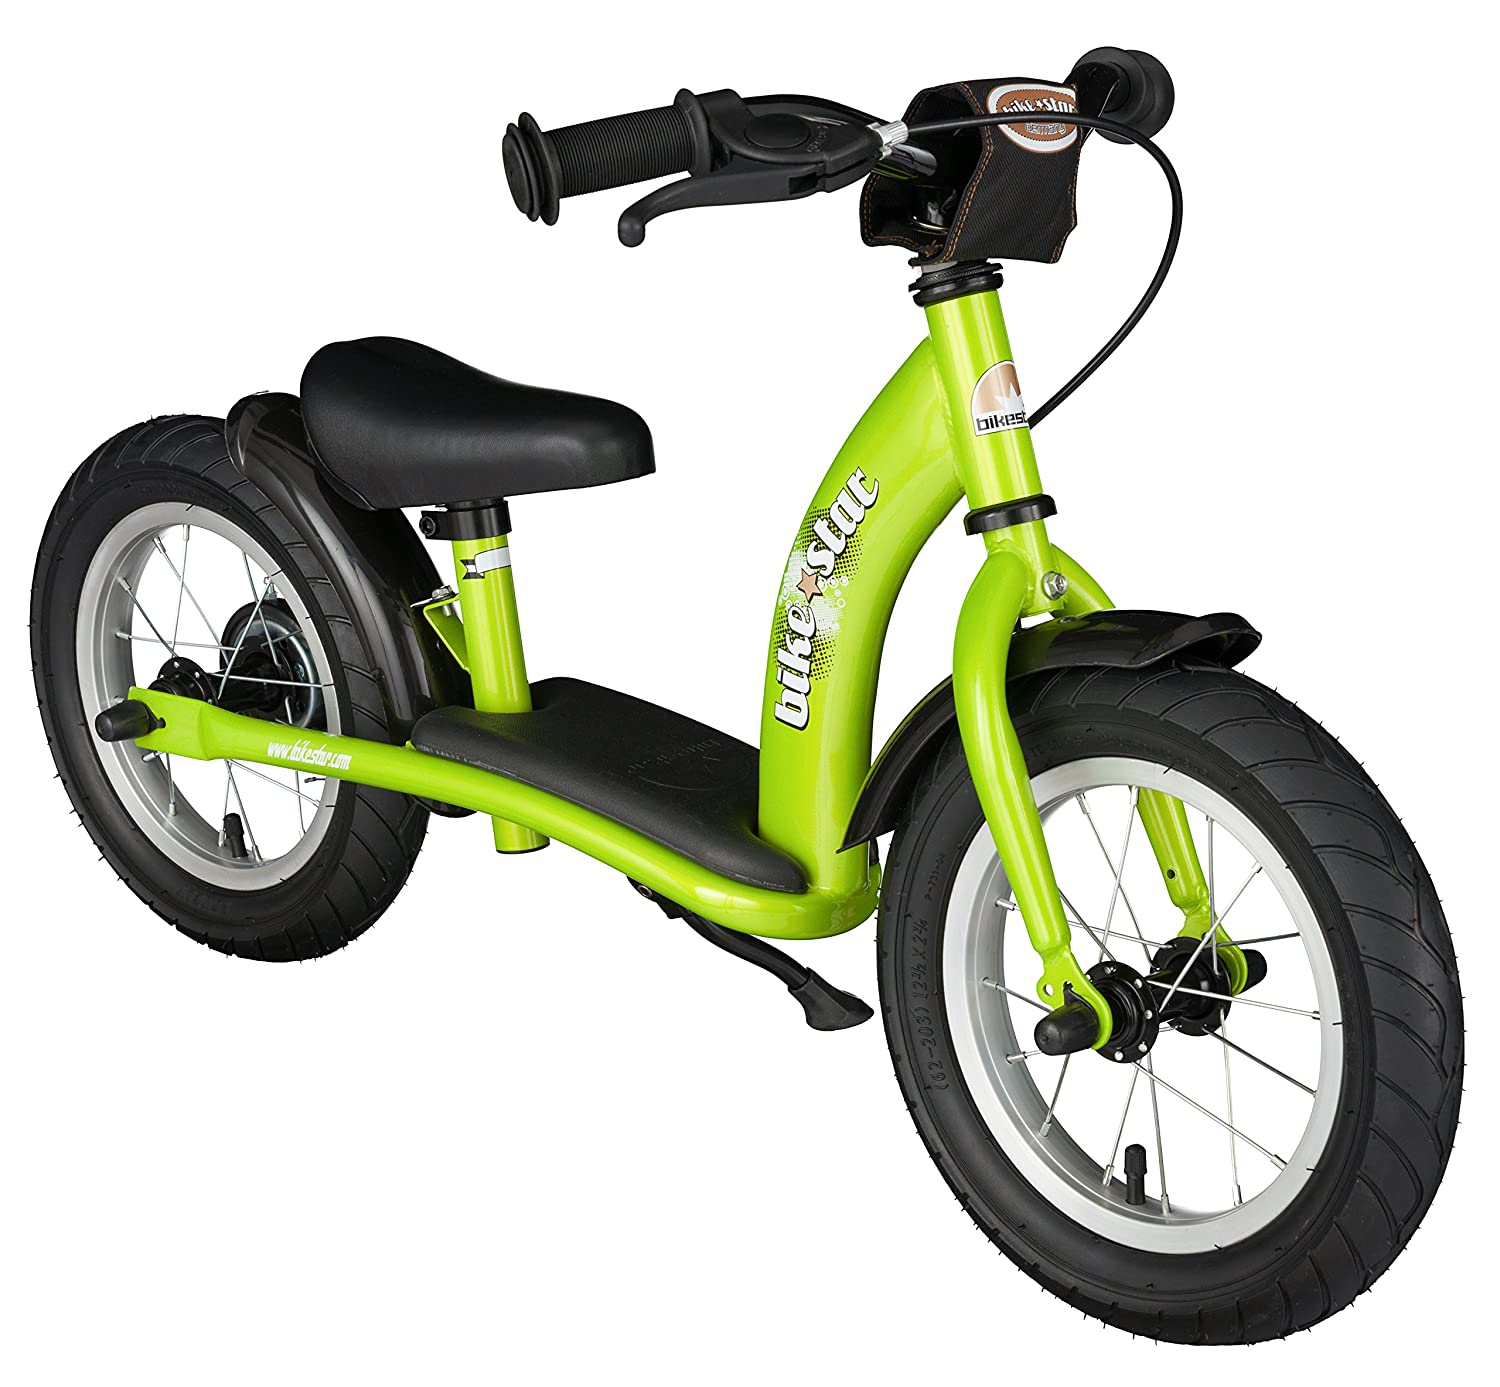 BIKESTAR Original Safety Lightweight Kids First Balance Running Bike with brakes and with air tires for age 3 year old boys and girls | 12 Inch Classic Edition | Brilliant Green Star-Trademarks